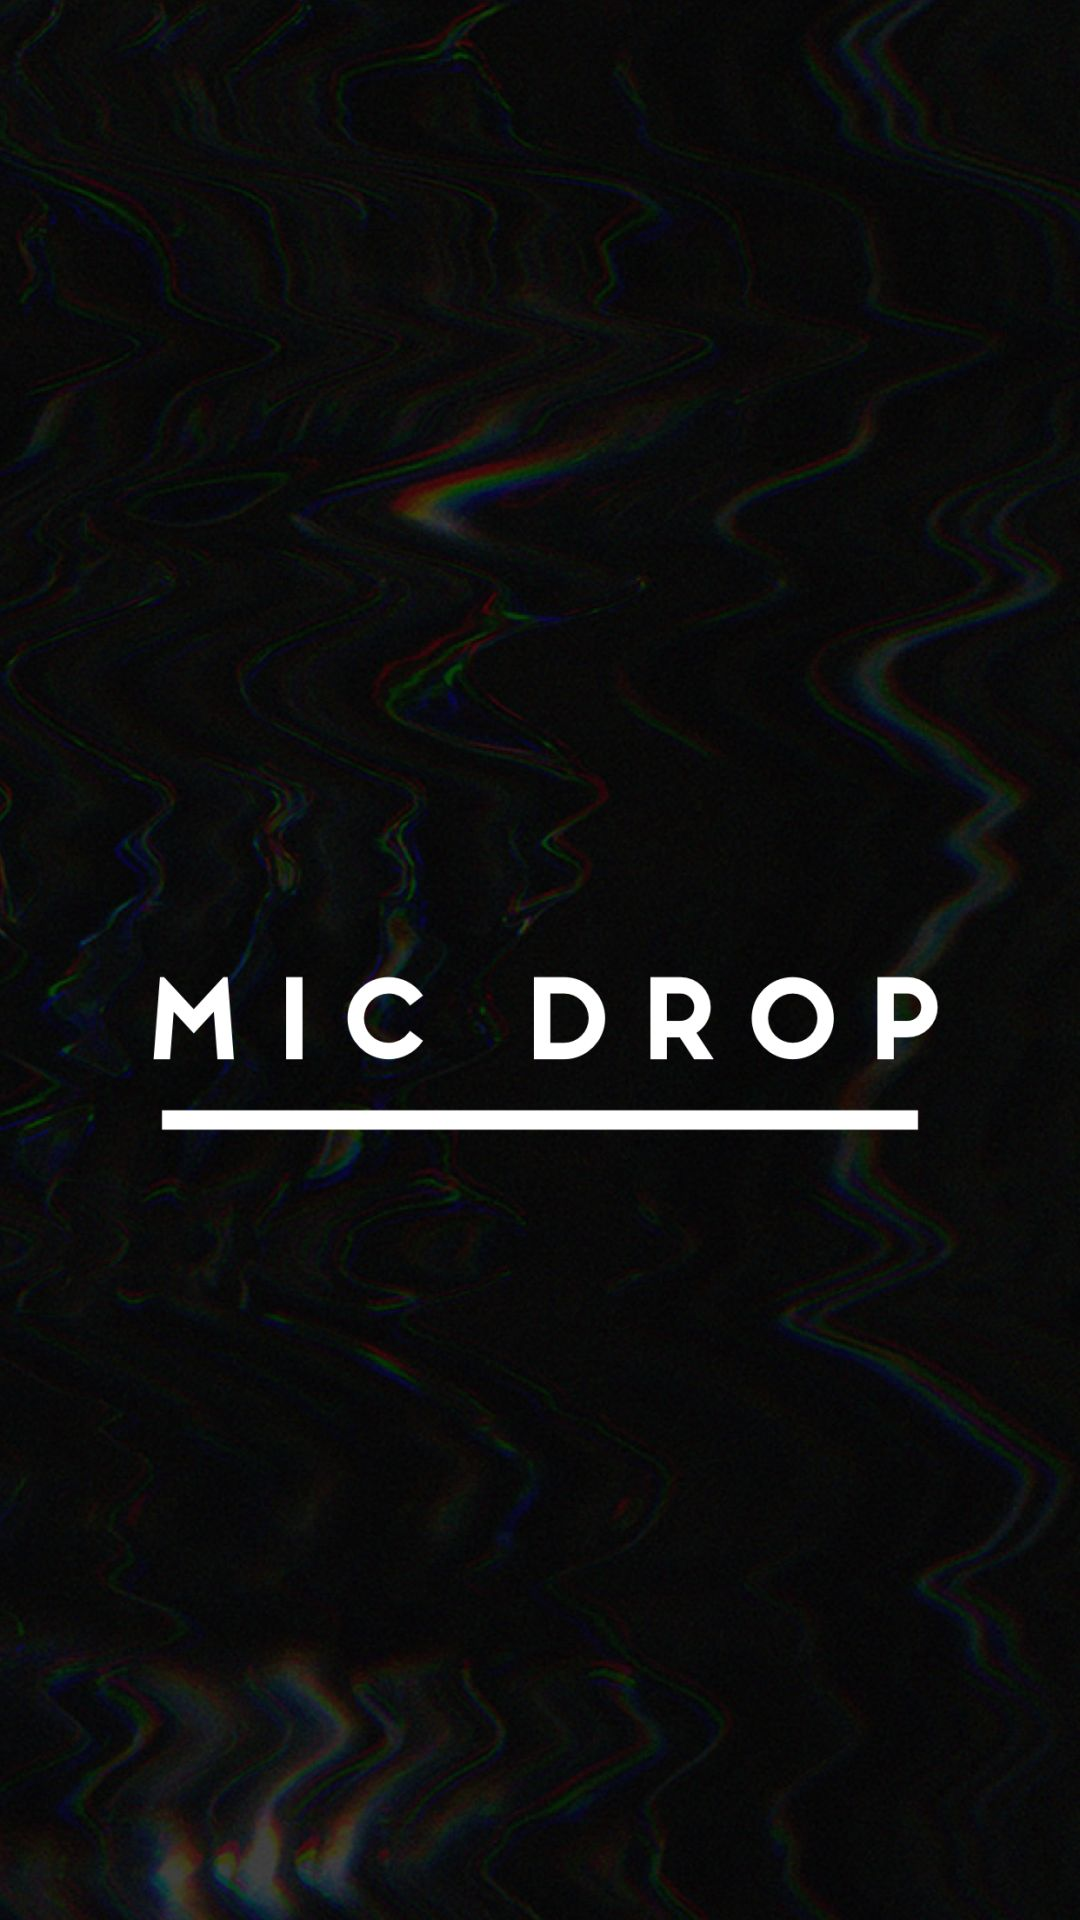 Bts Tumblr Wallpaper Aesthetics Mic Mic Bungee, Hd